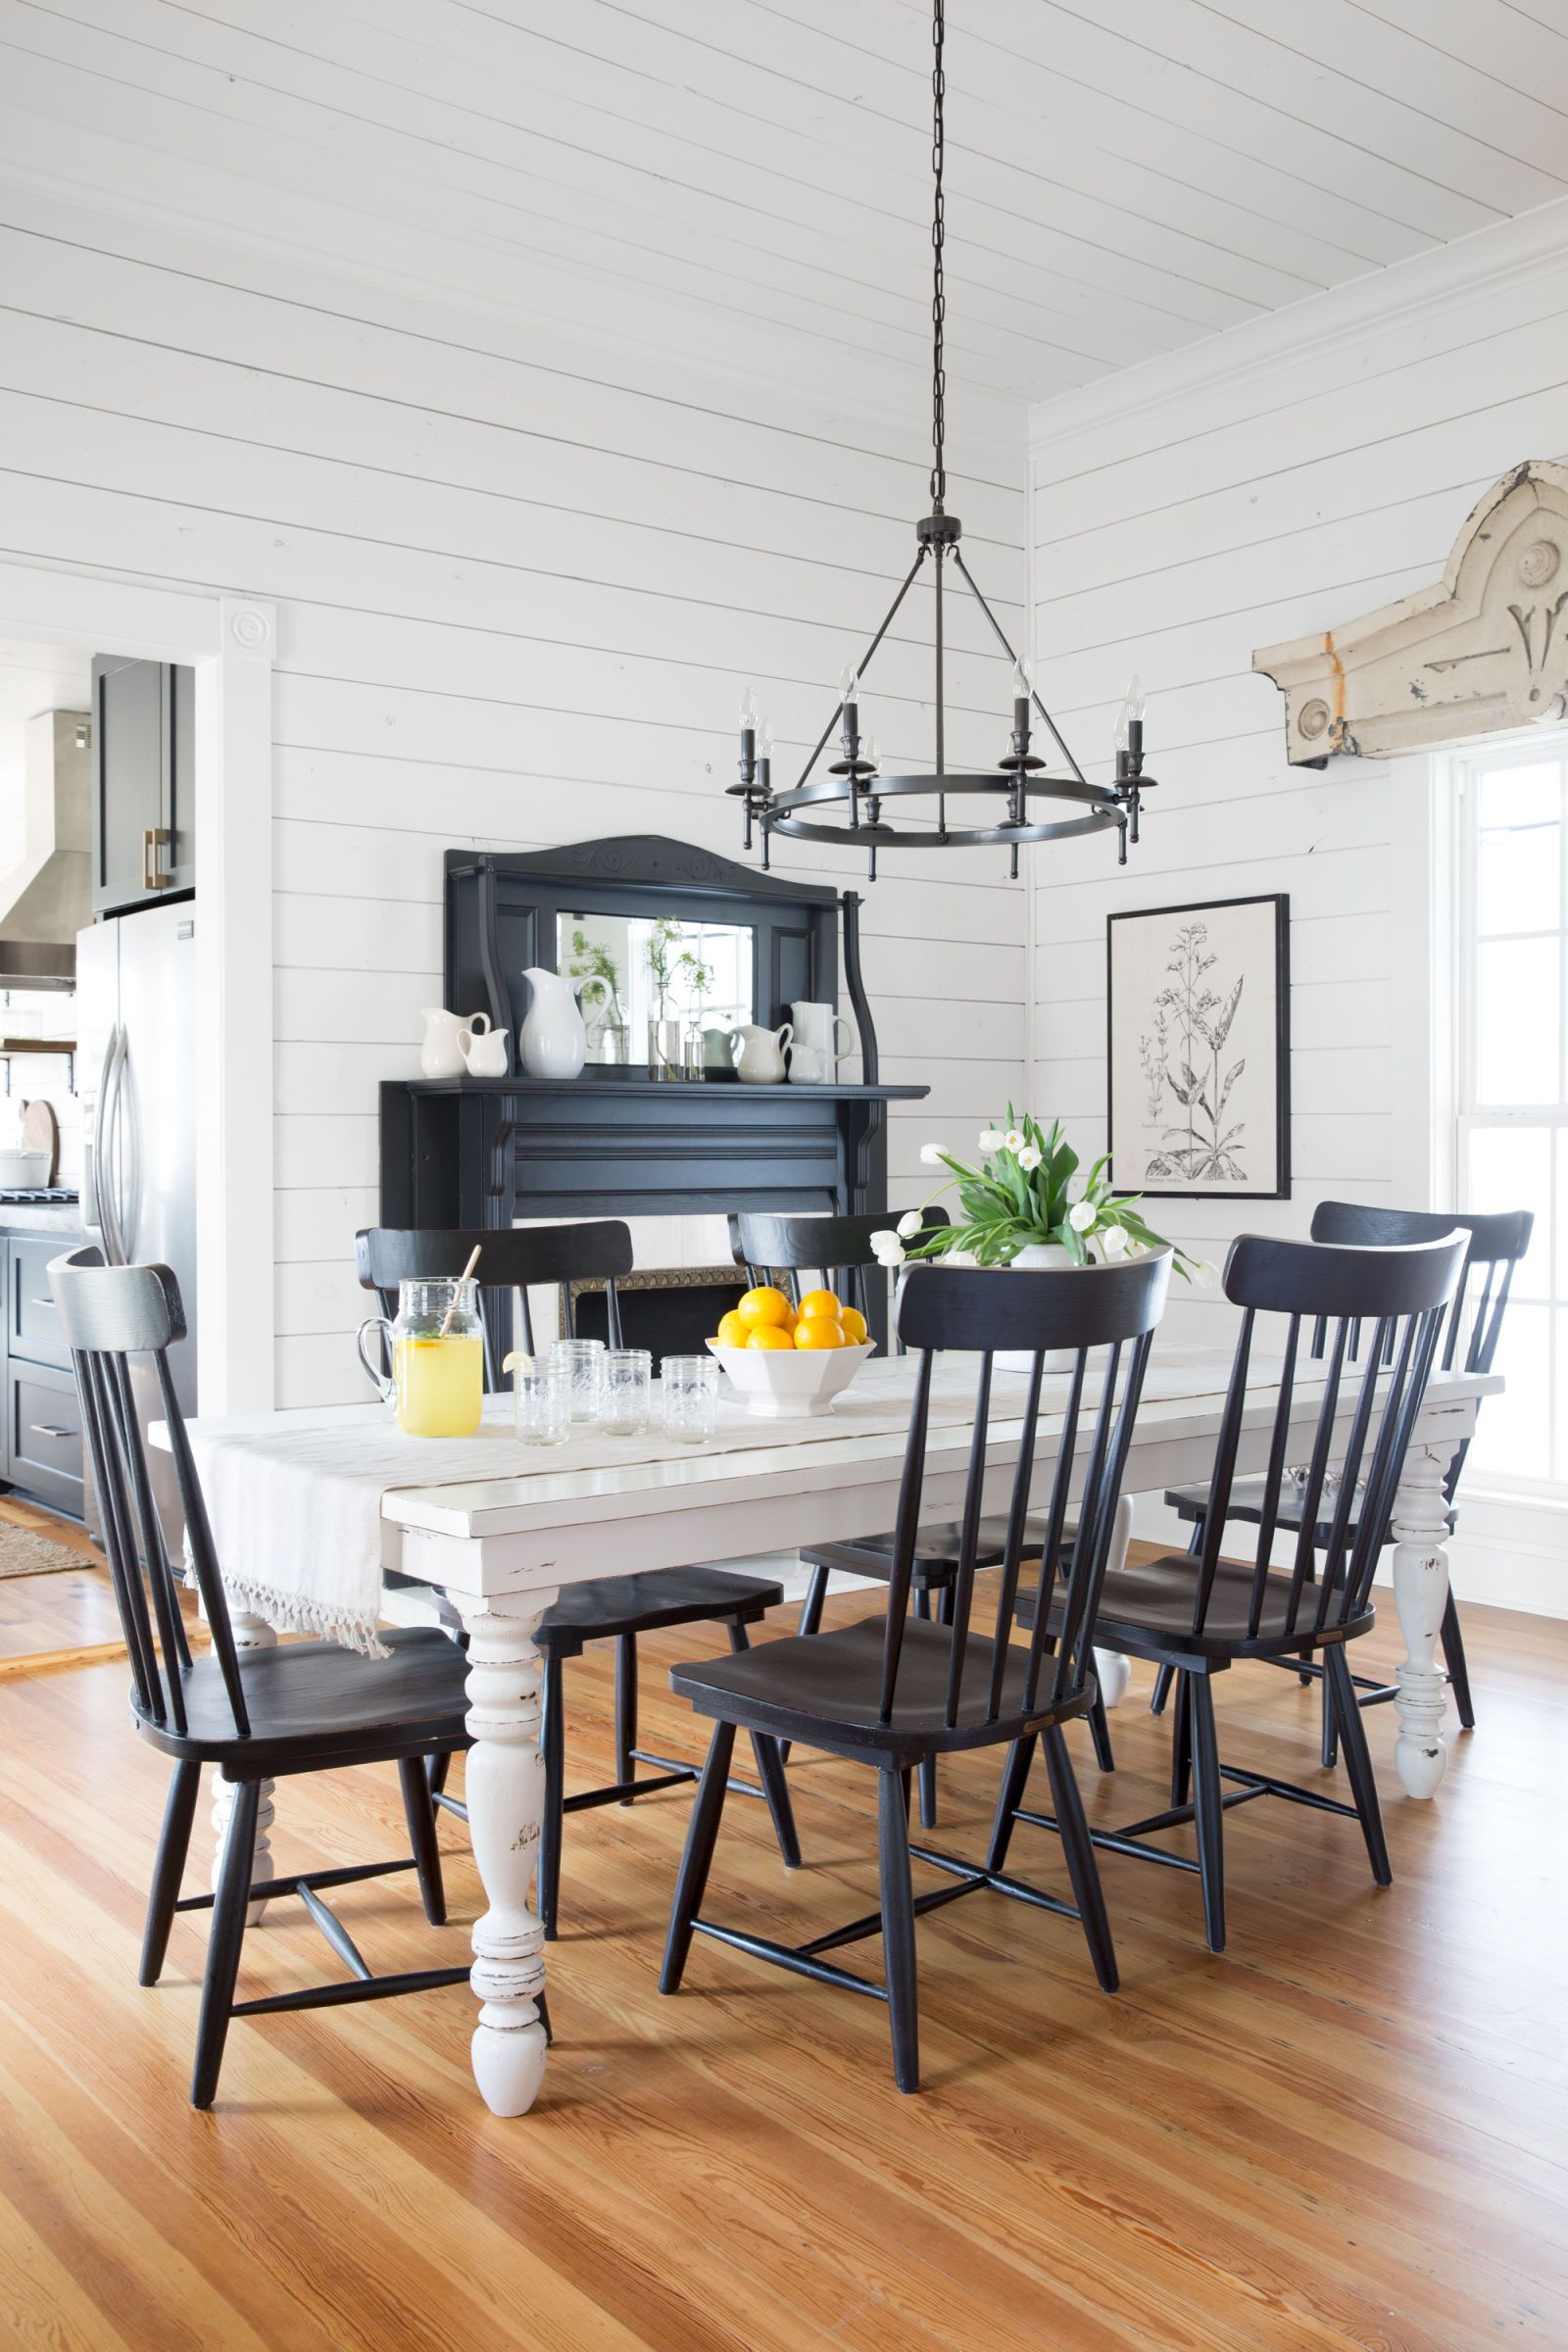 Take a Tour of Chip and Joanna Gaines Magnolia House B&B